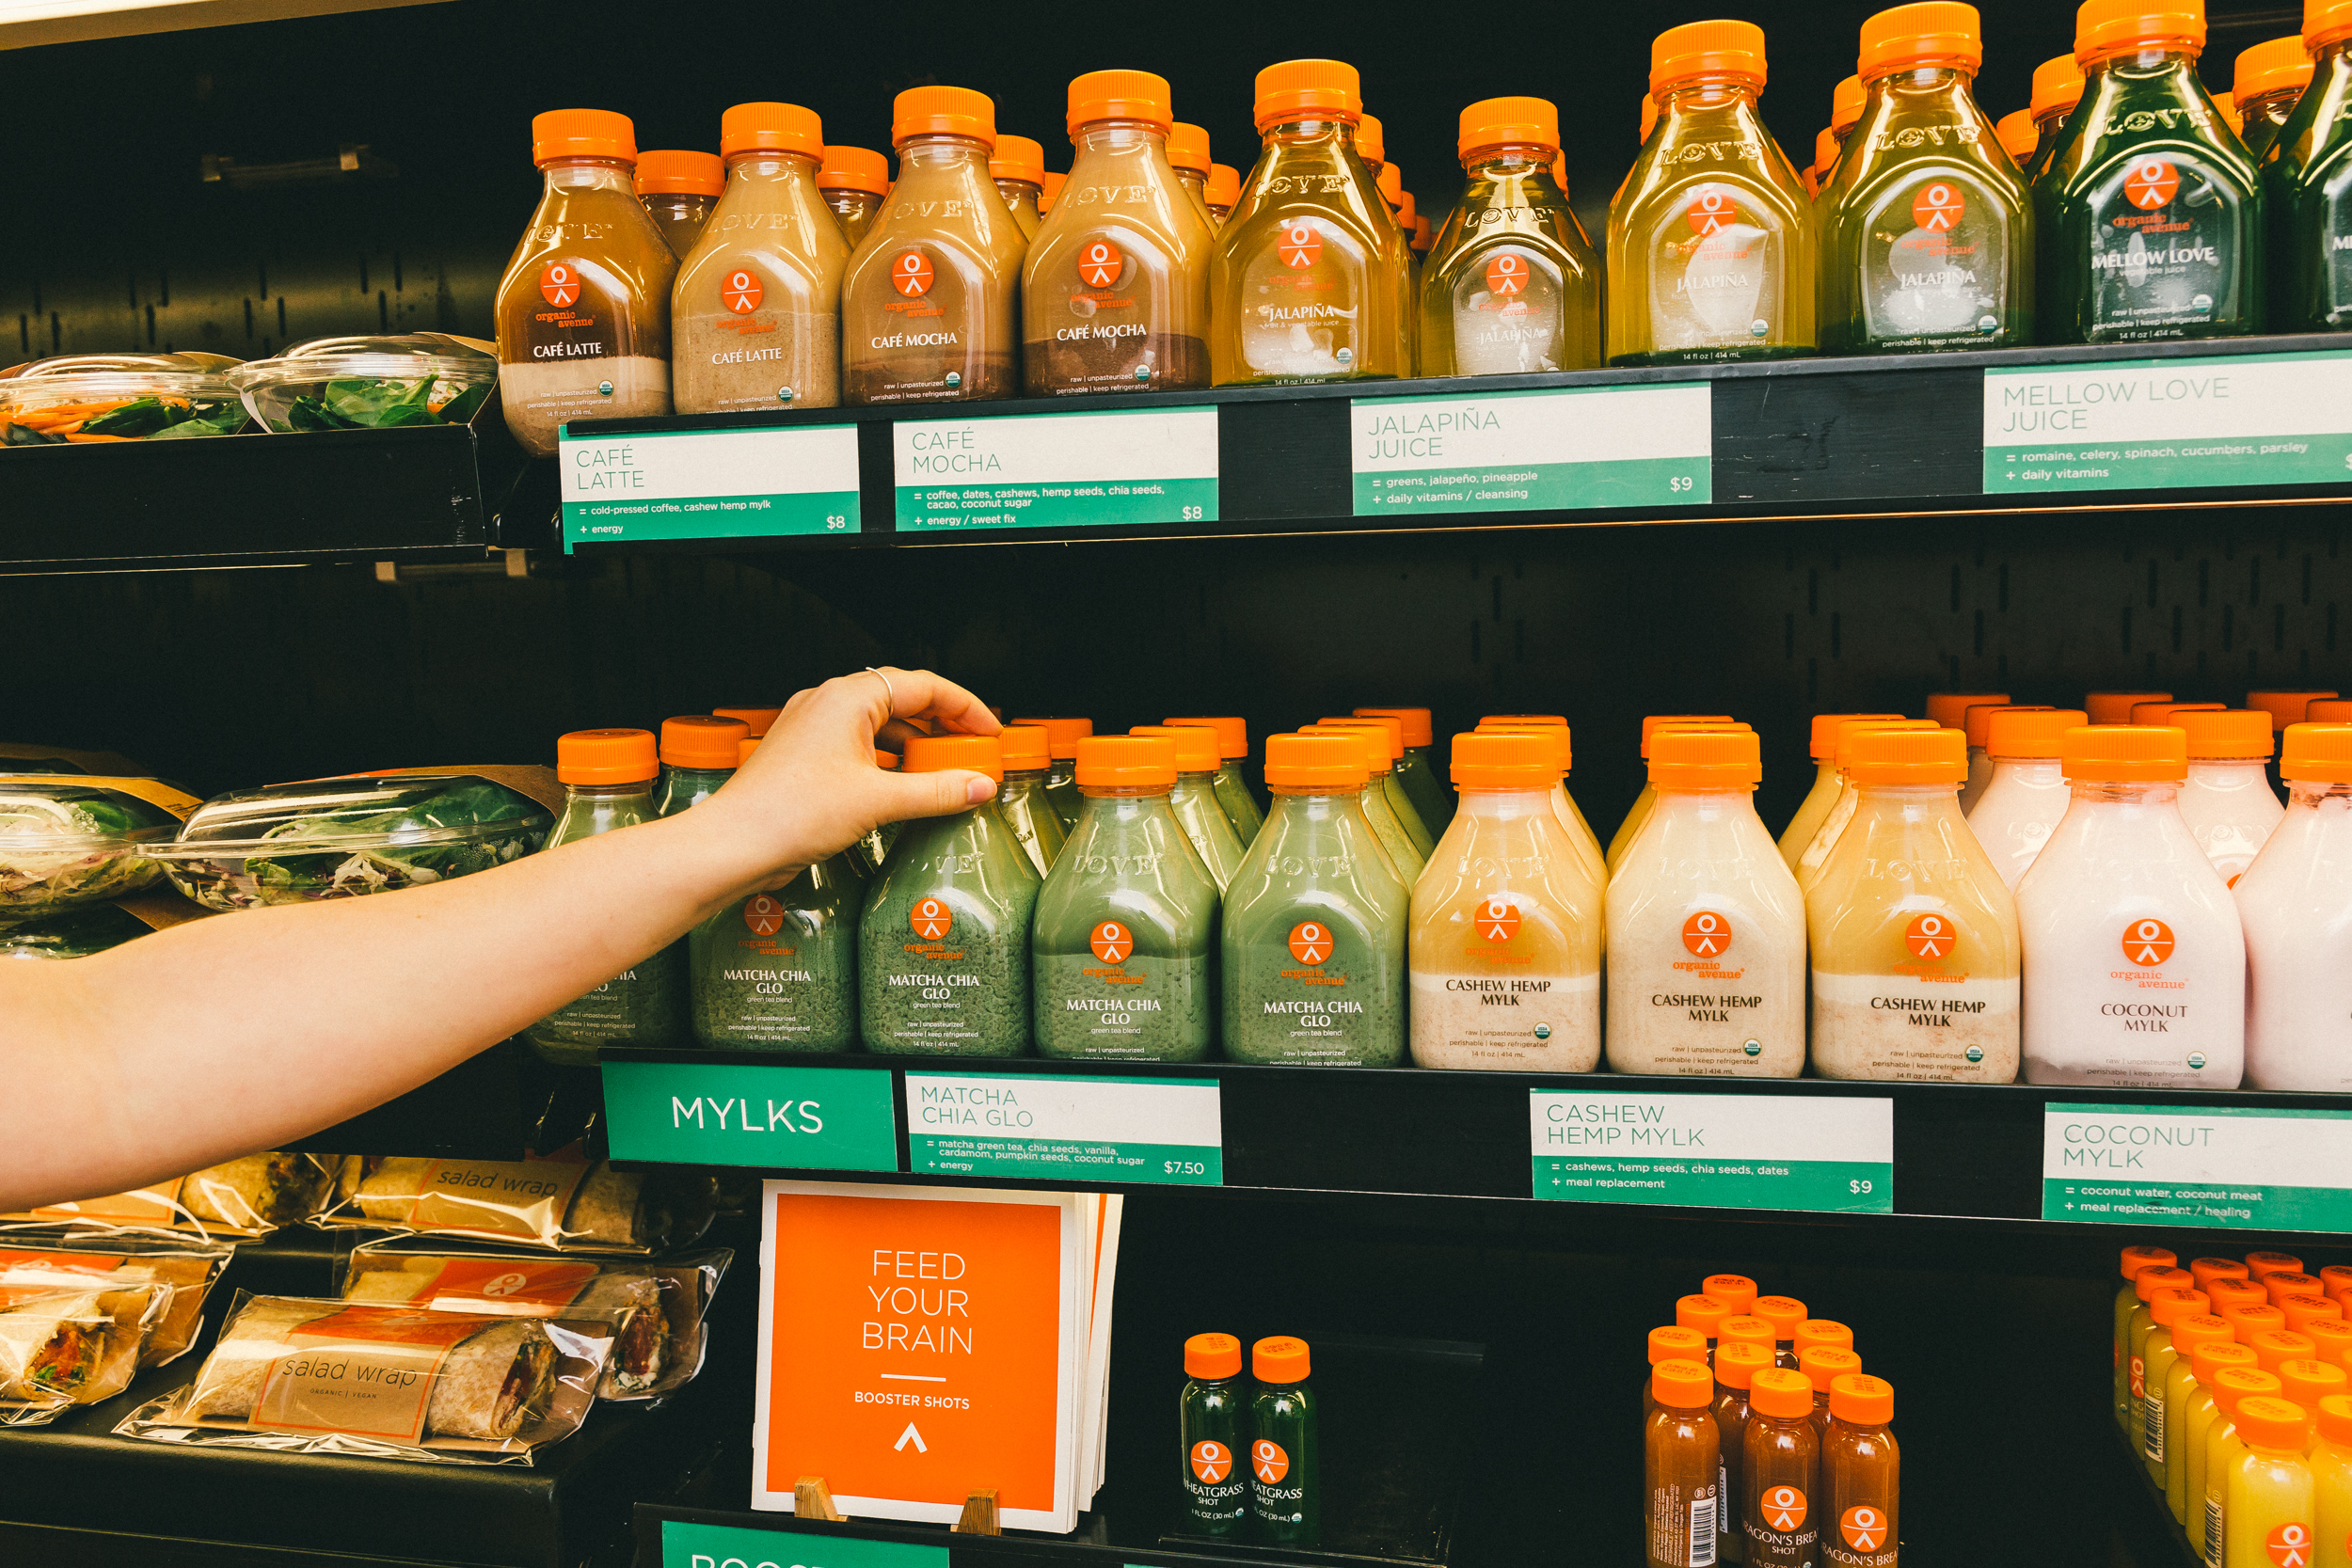 Have we reached peak juice racked you used to see people walking around with those orange organic avenue bags but not so much anymore people have lost connection to the brand malvernweather Gallery